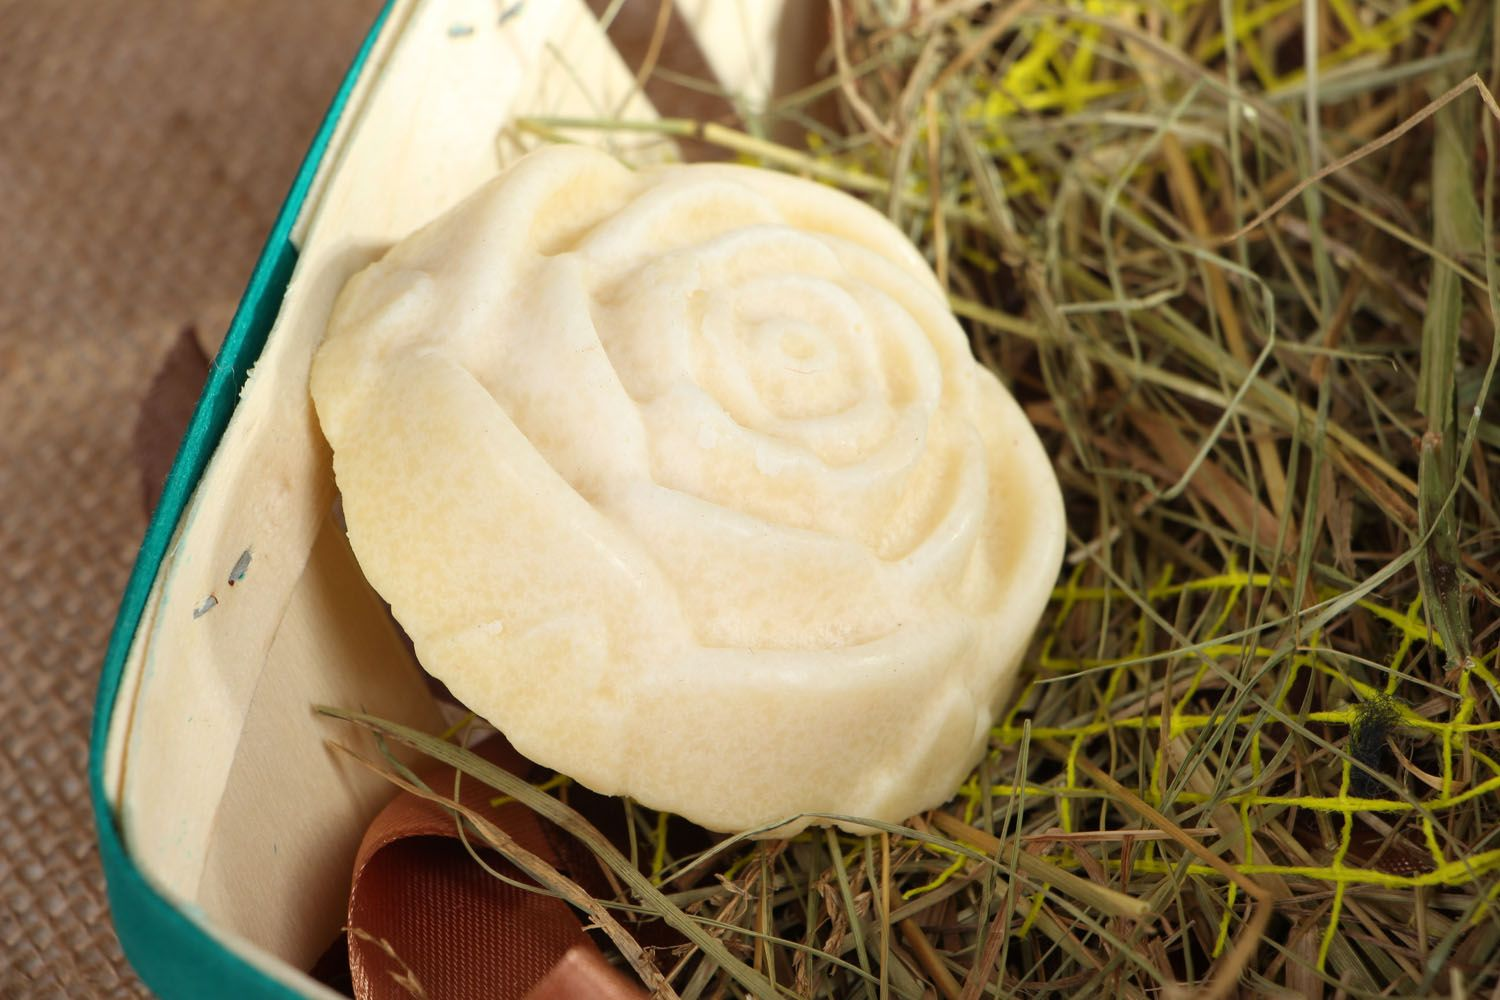 Plate-cream in the shape of rose photo 4